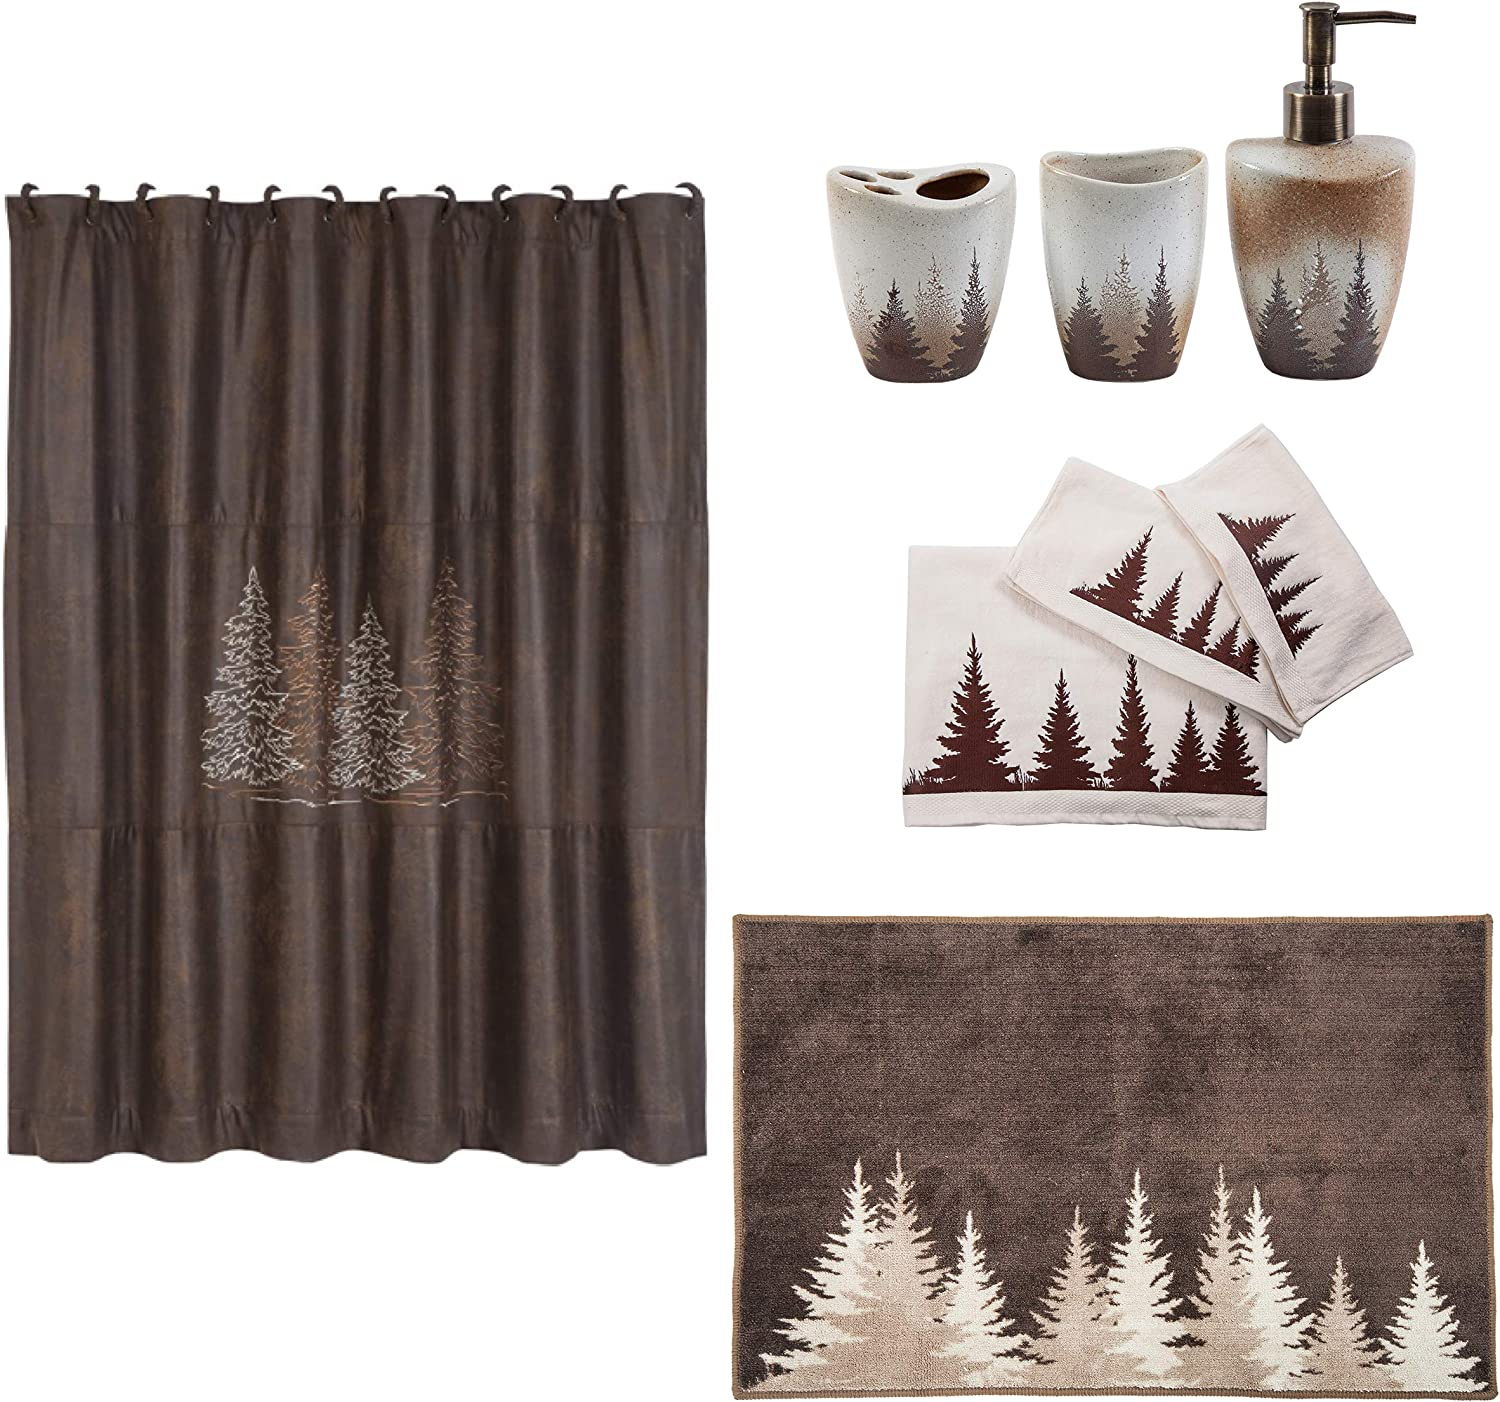 HiEnd Accents Clearwater 20-Piece Bathroom, Shower Curtain Hook, Bath Accessory, Rug, Towel Set, Brown